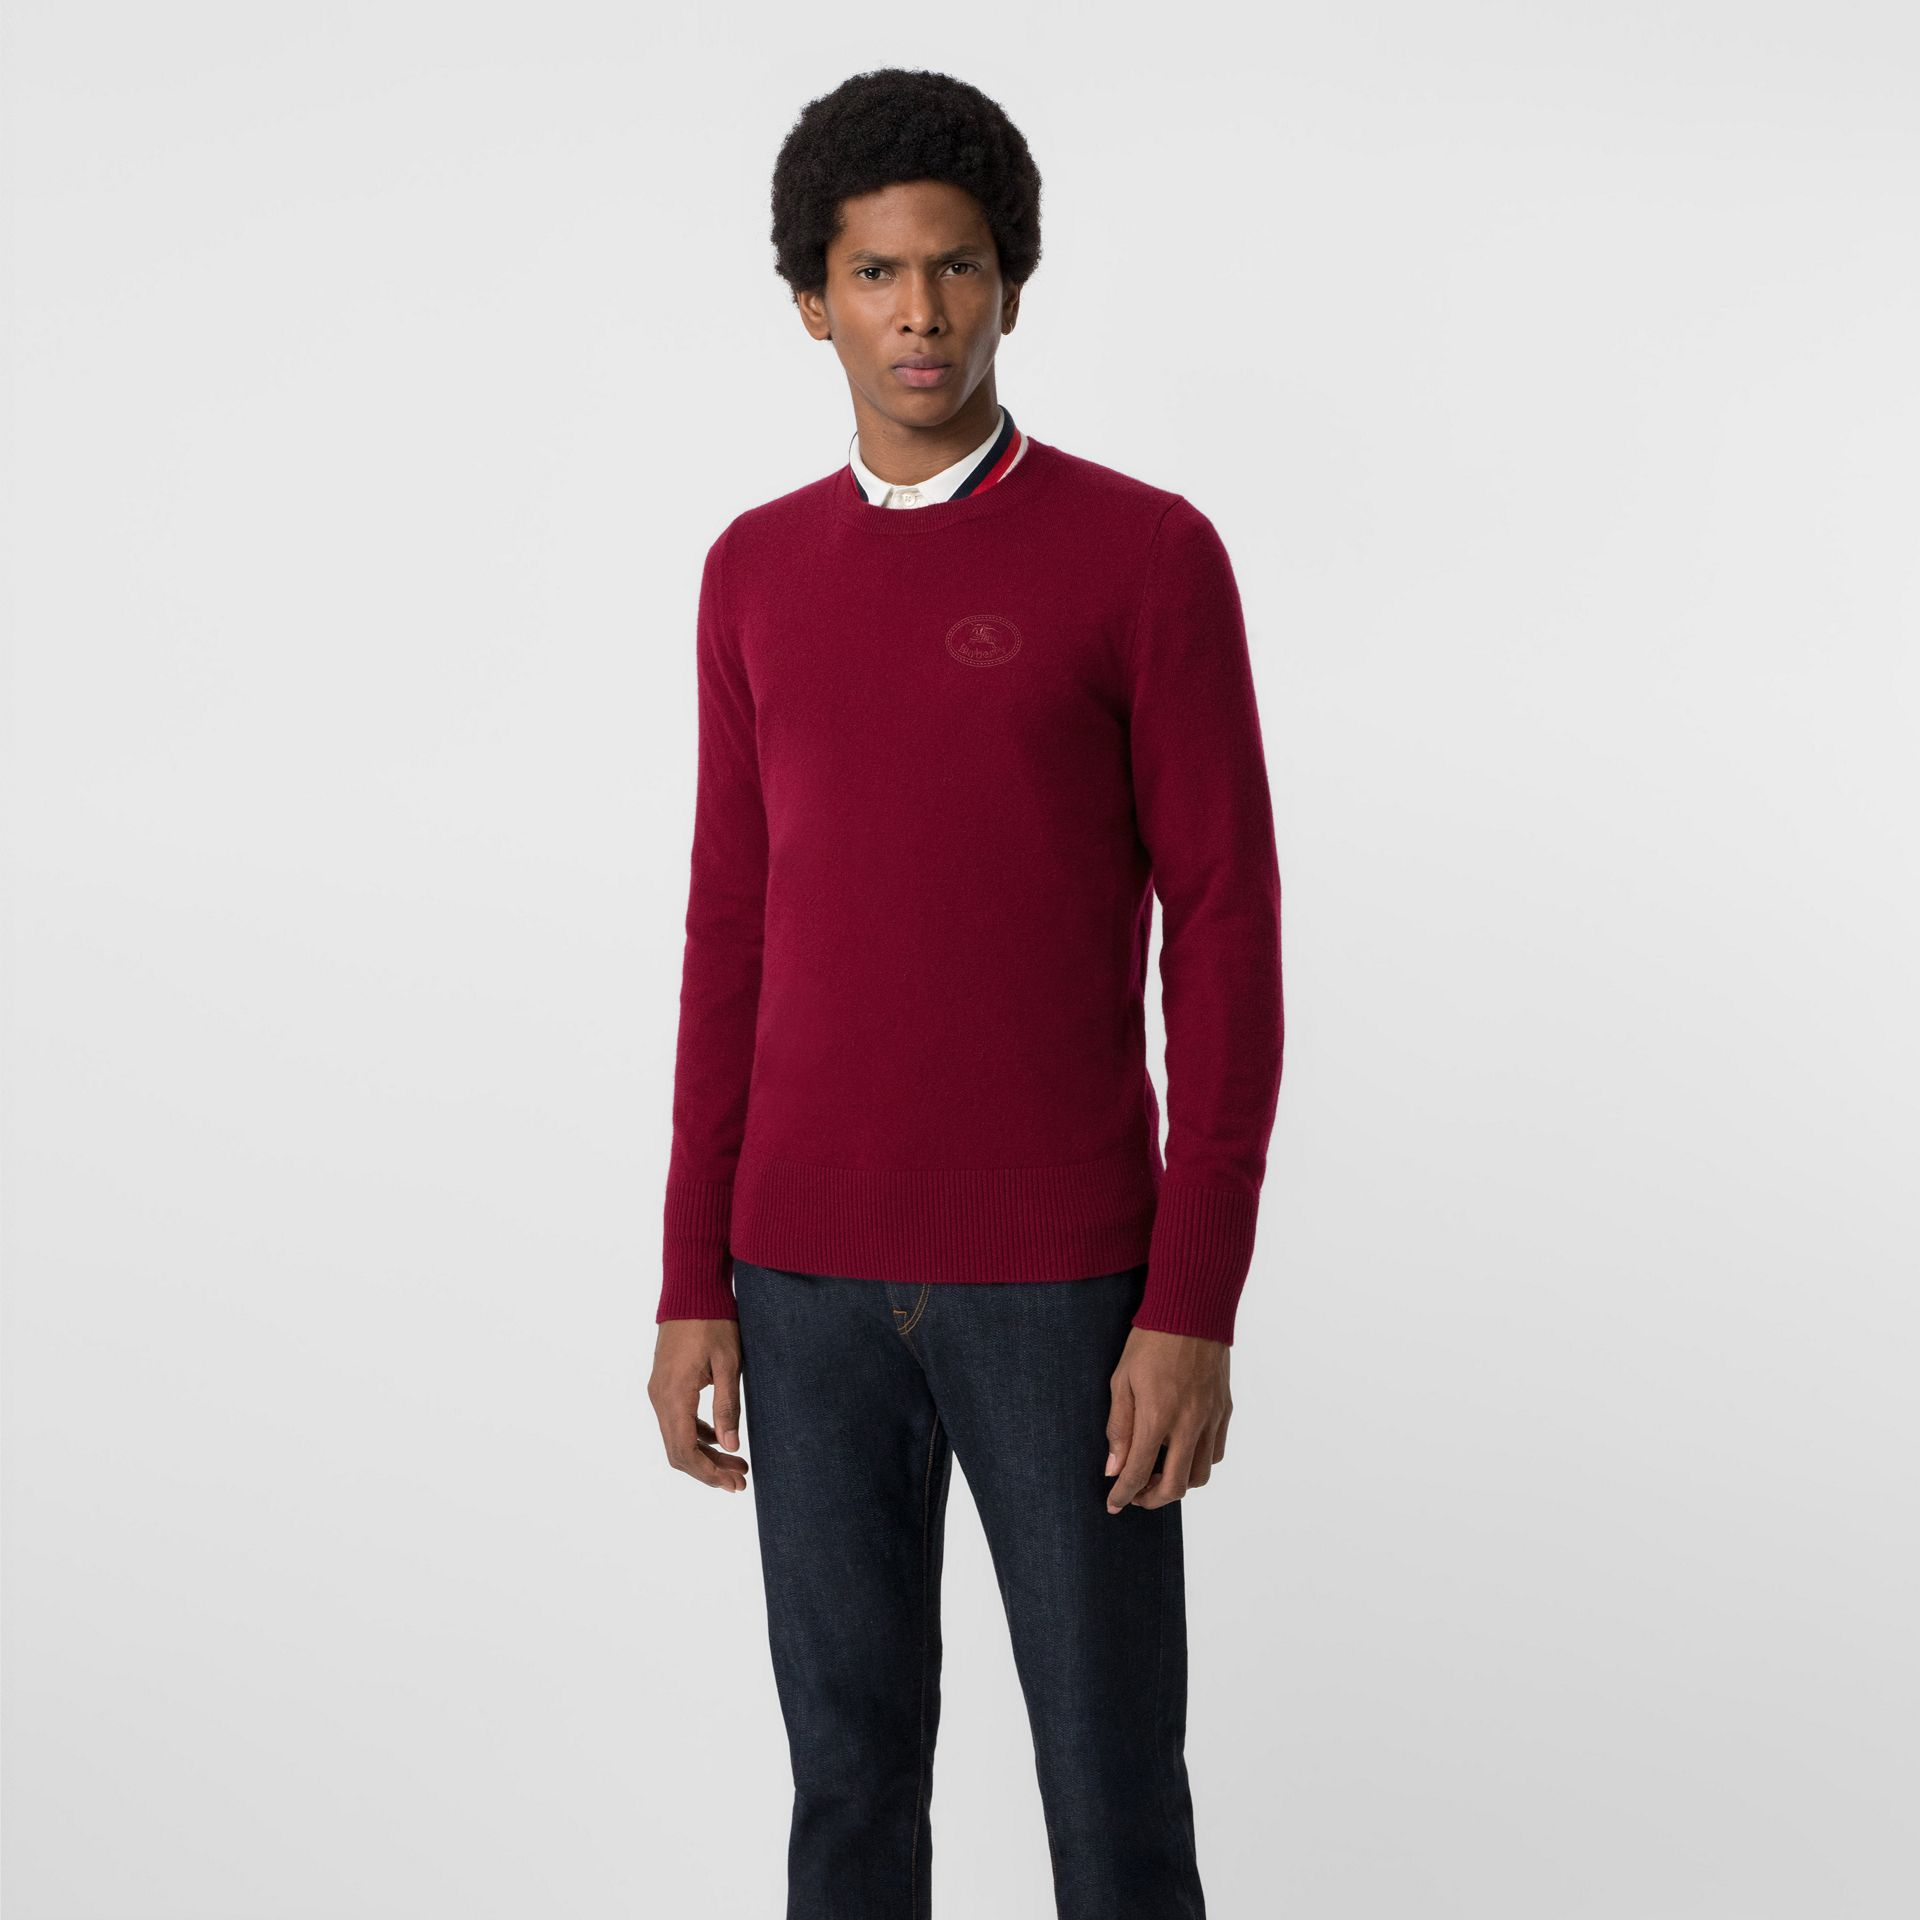 Embroidered Logo Cashmere Sweater in Claret - Men | Burberry Singapore - gallery image 4